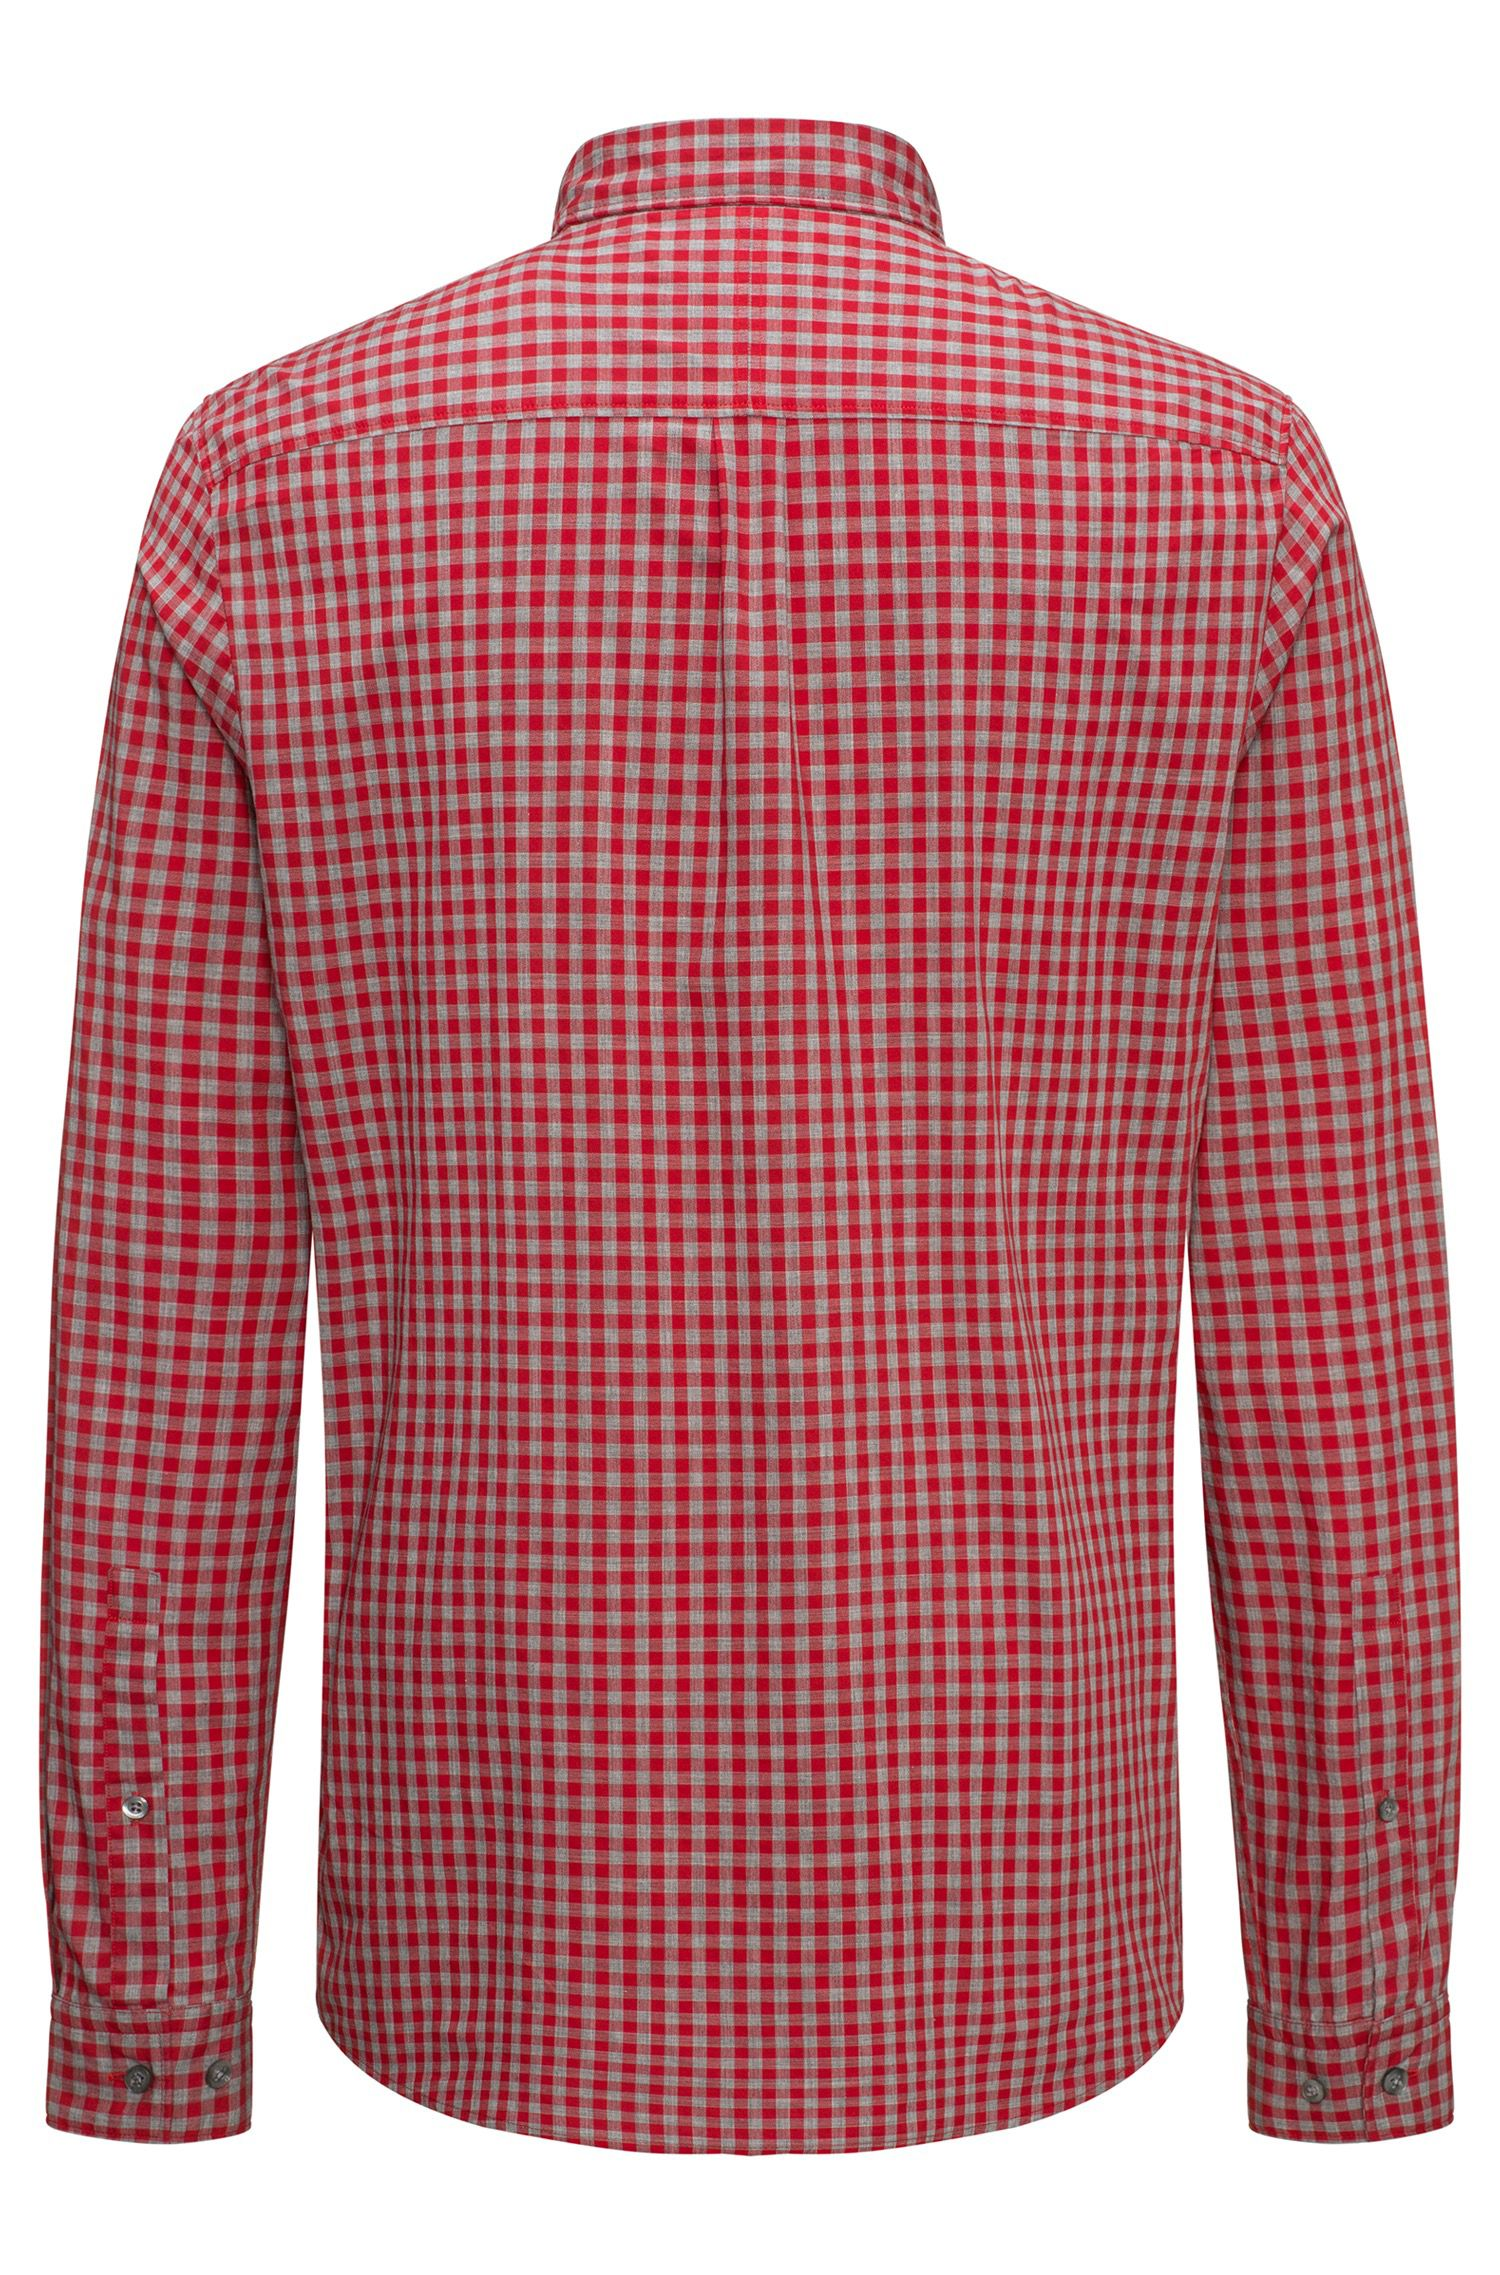 Relaxed-fit cotton shirt with a Vichy check